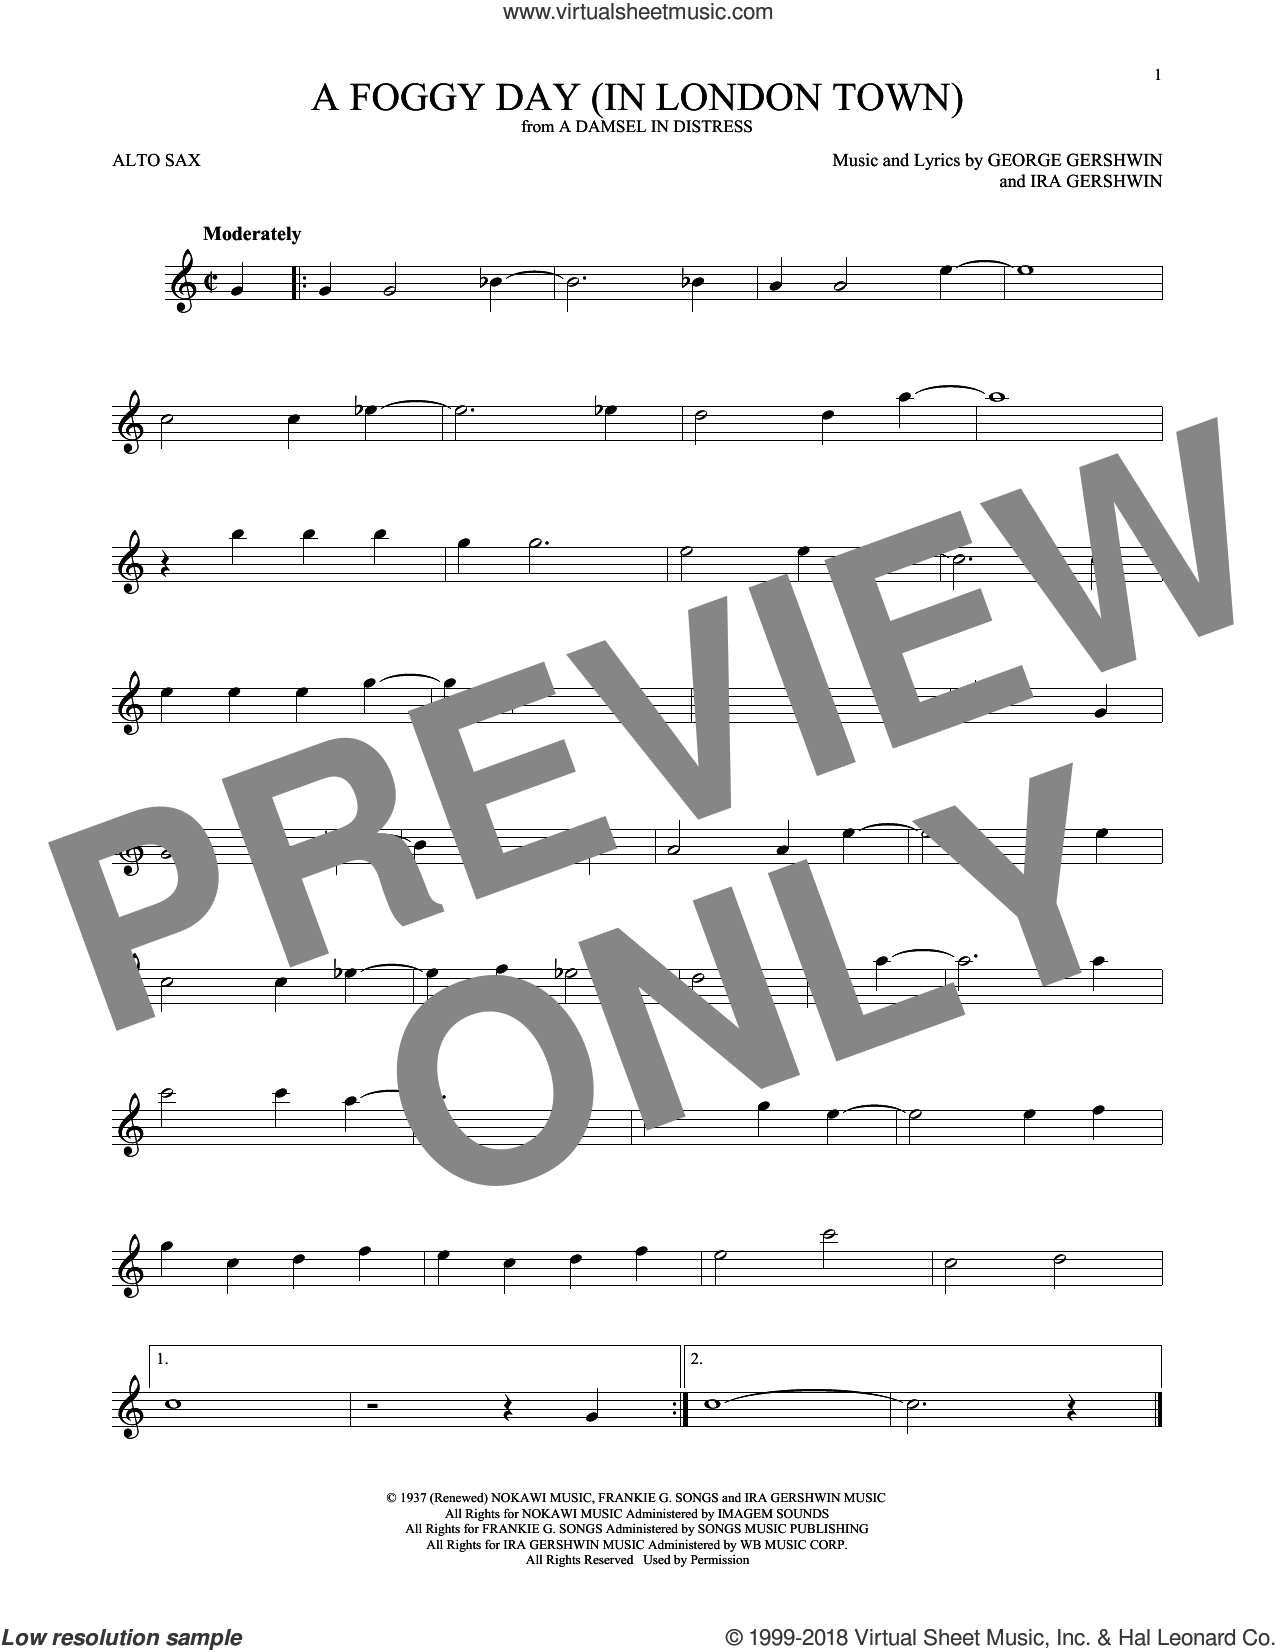 A Foggy Day (In London Town) sheet music for alto saxophone solo by George Gershwin and Ira Gershwin, intermediate skill level